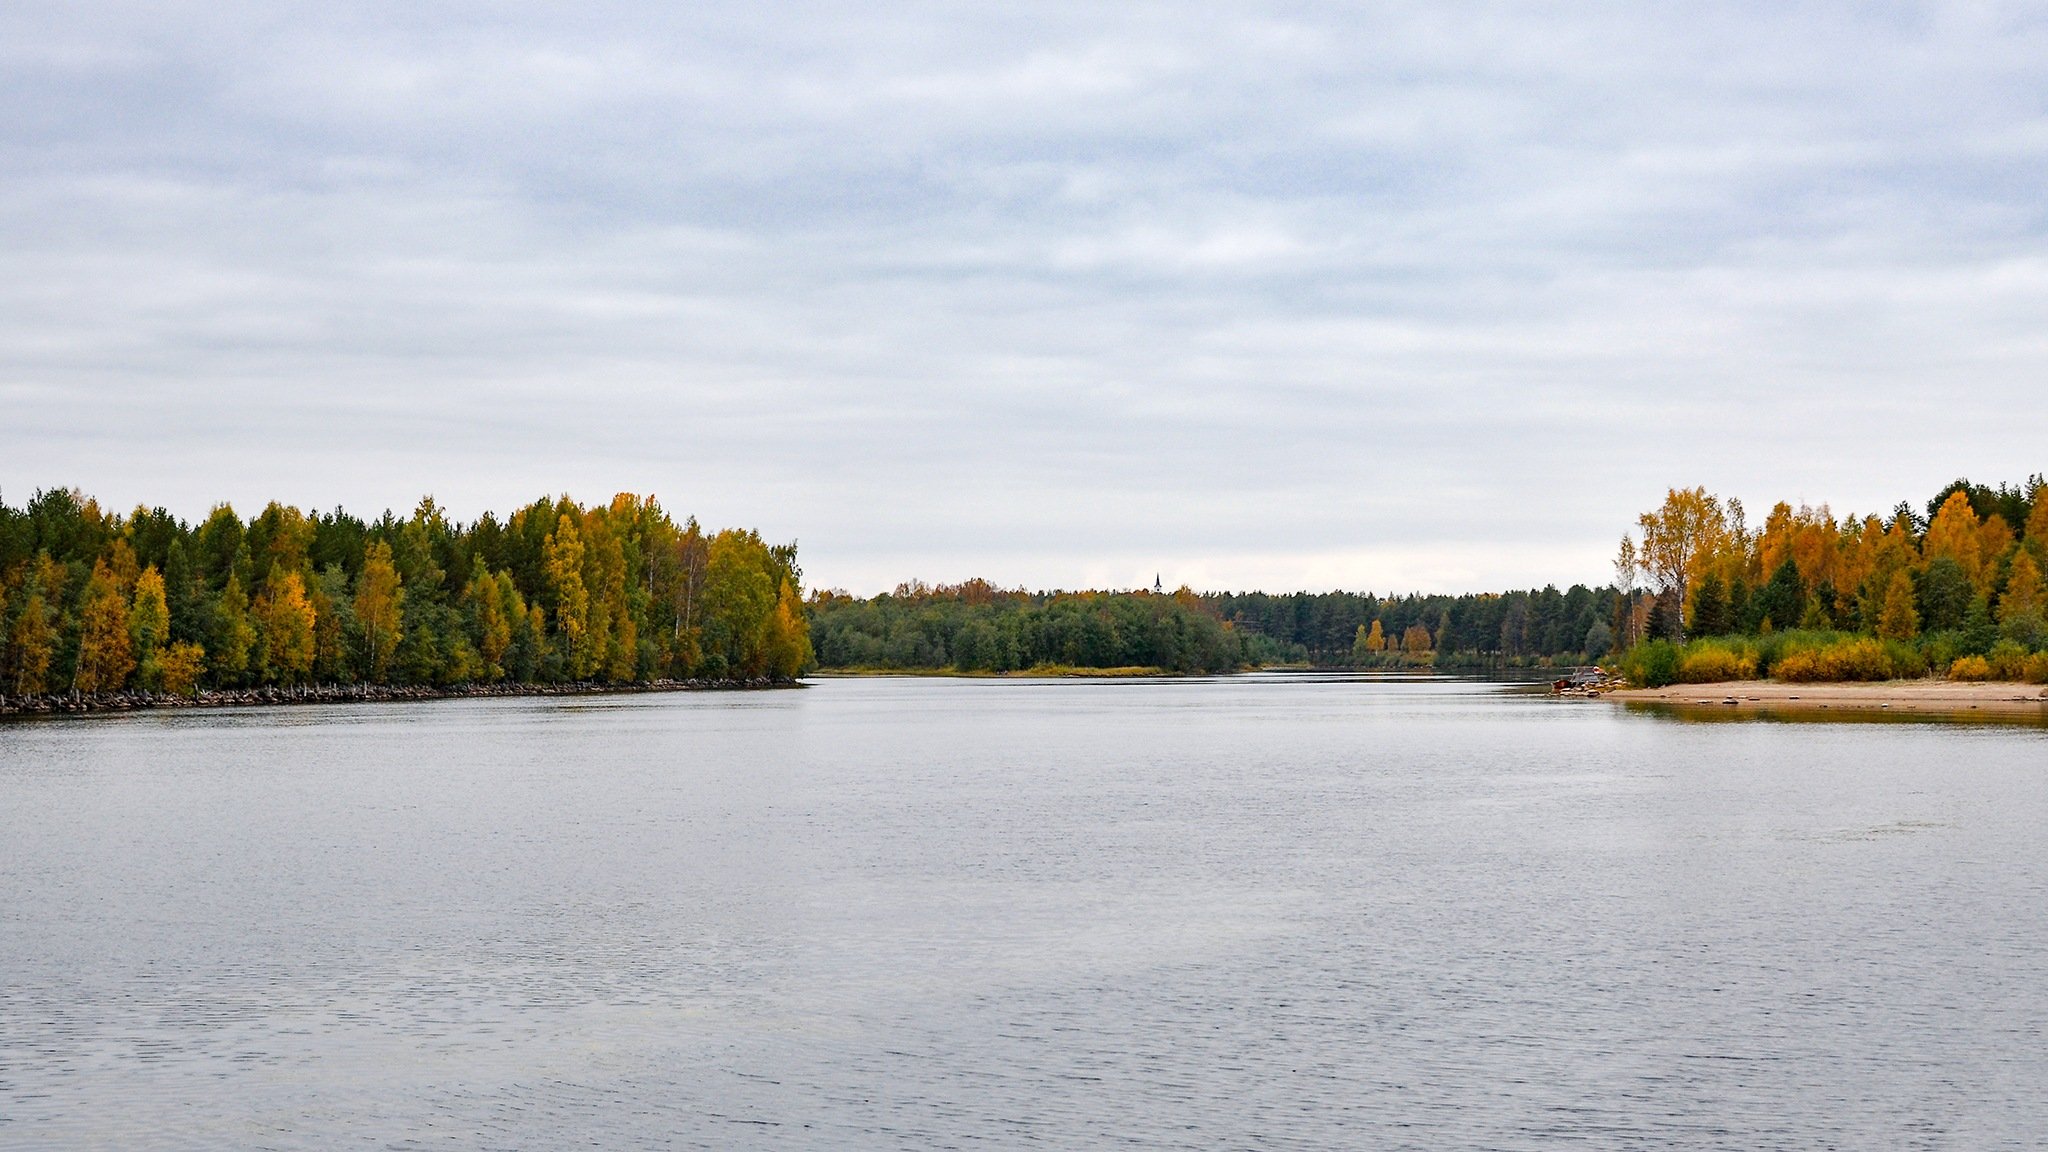 Quiet Flows the Byske river into the Gulf of Bothnia by Kjell Lundqvist